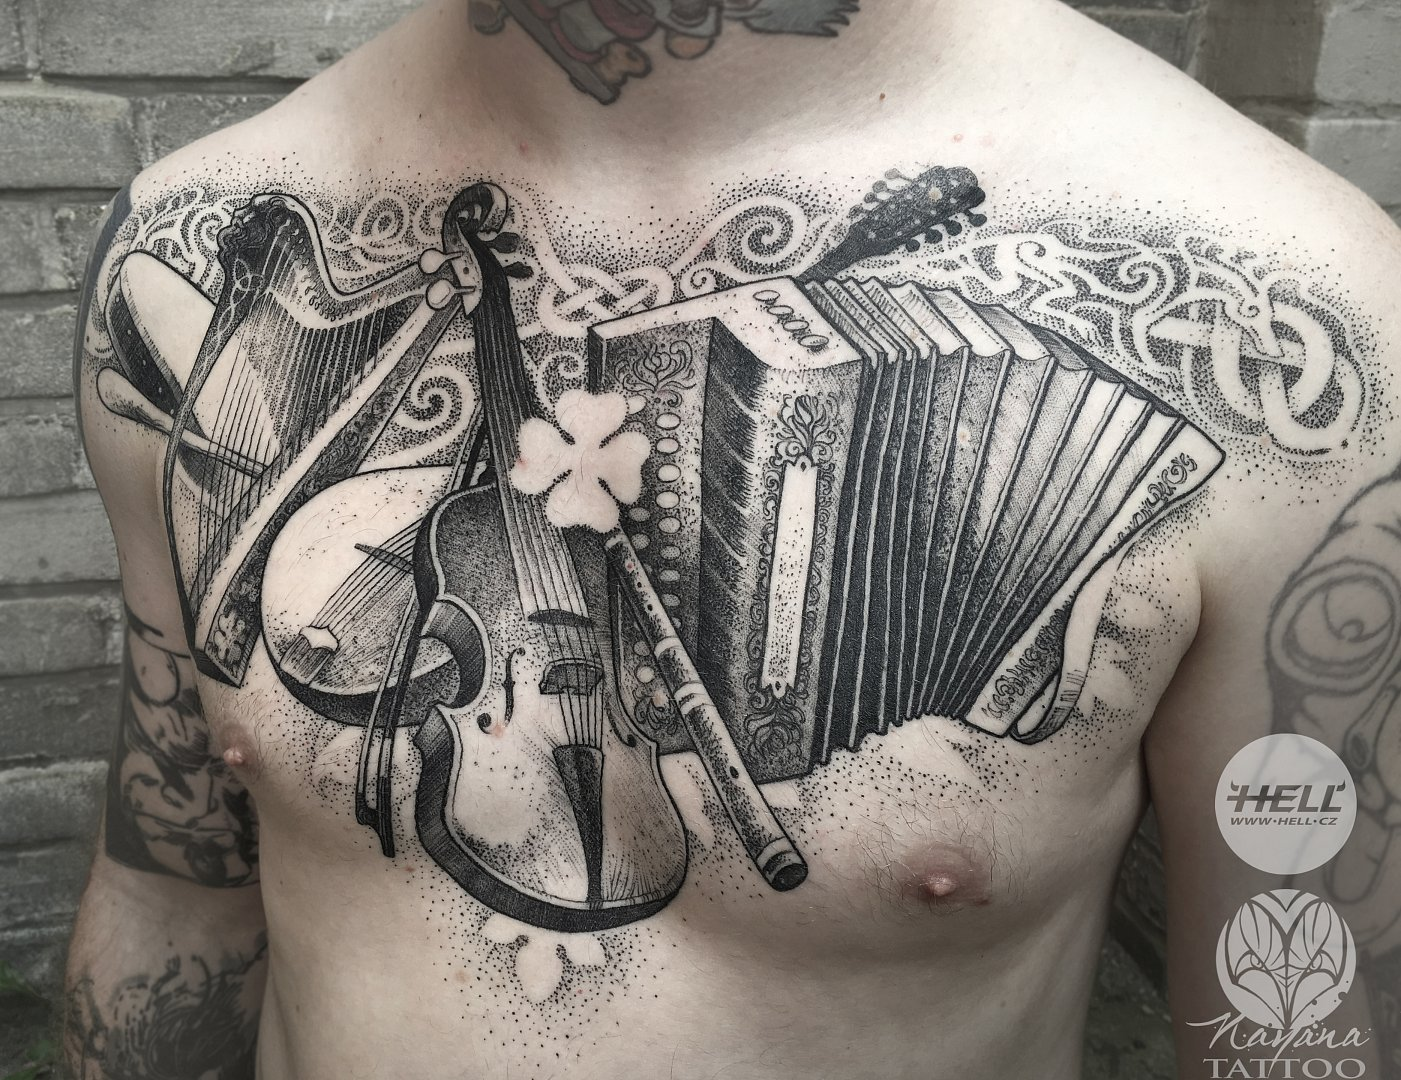 irish-music-instrument-nayana-tattoo